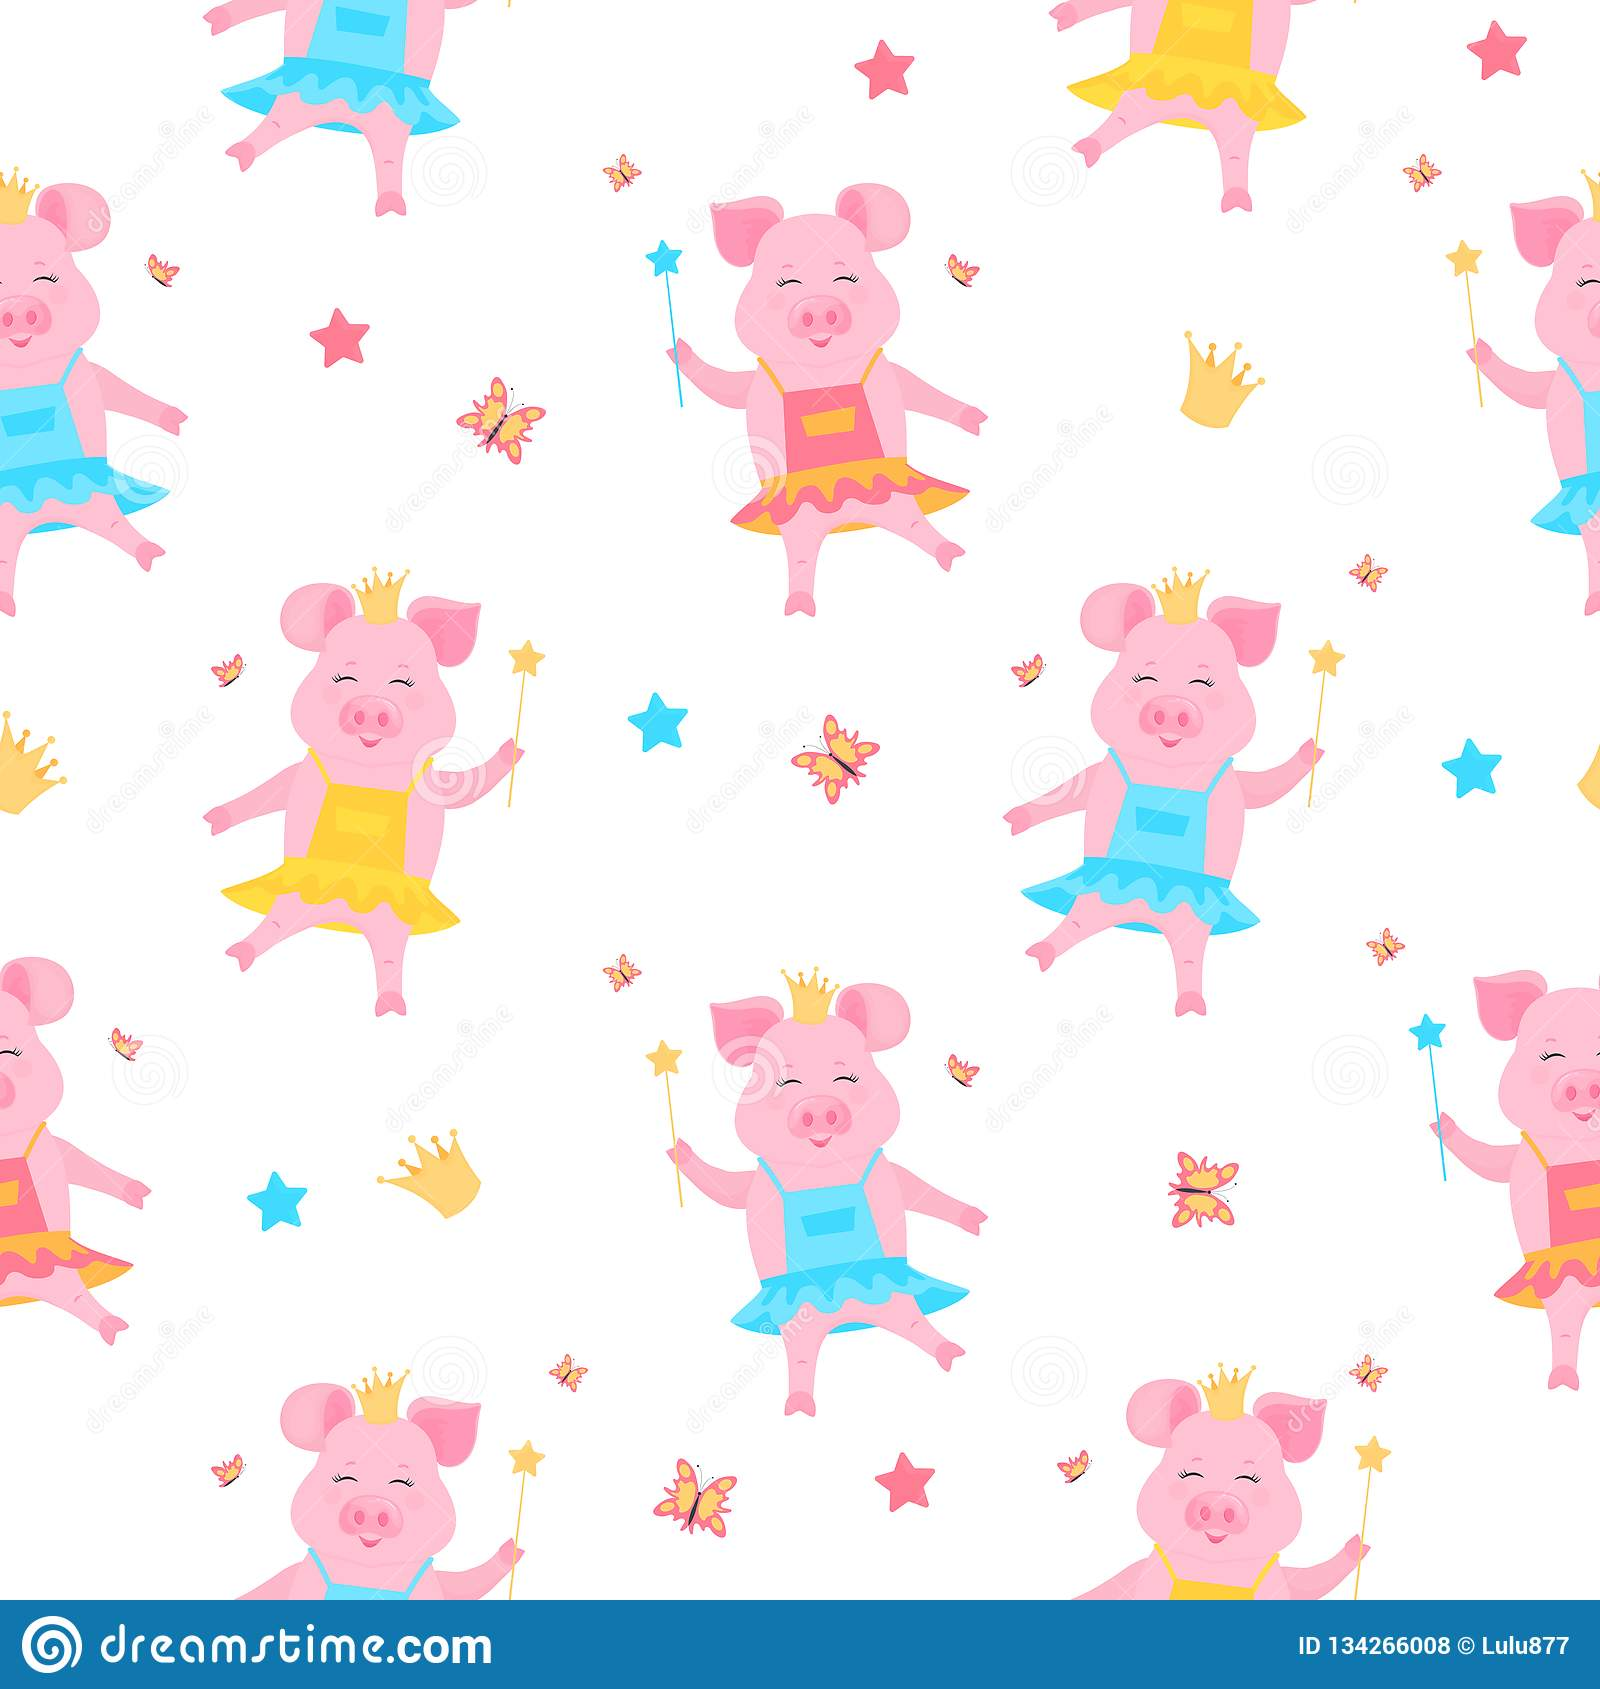 hight resolution of a cute pig princess in a dress and in the crown with a magic wand in